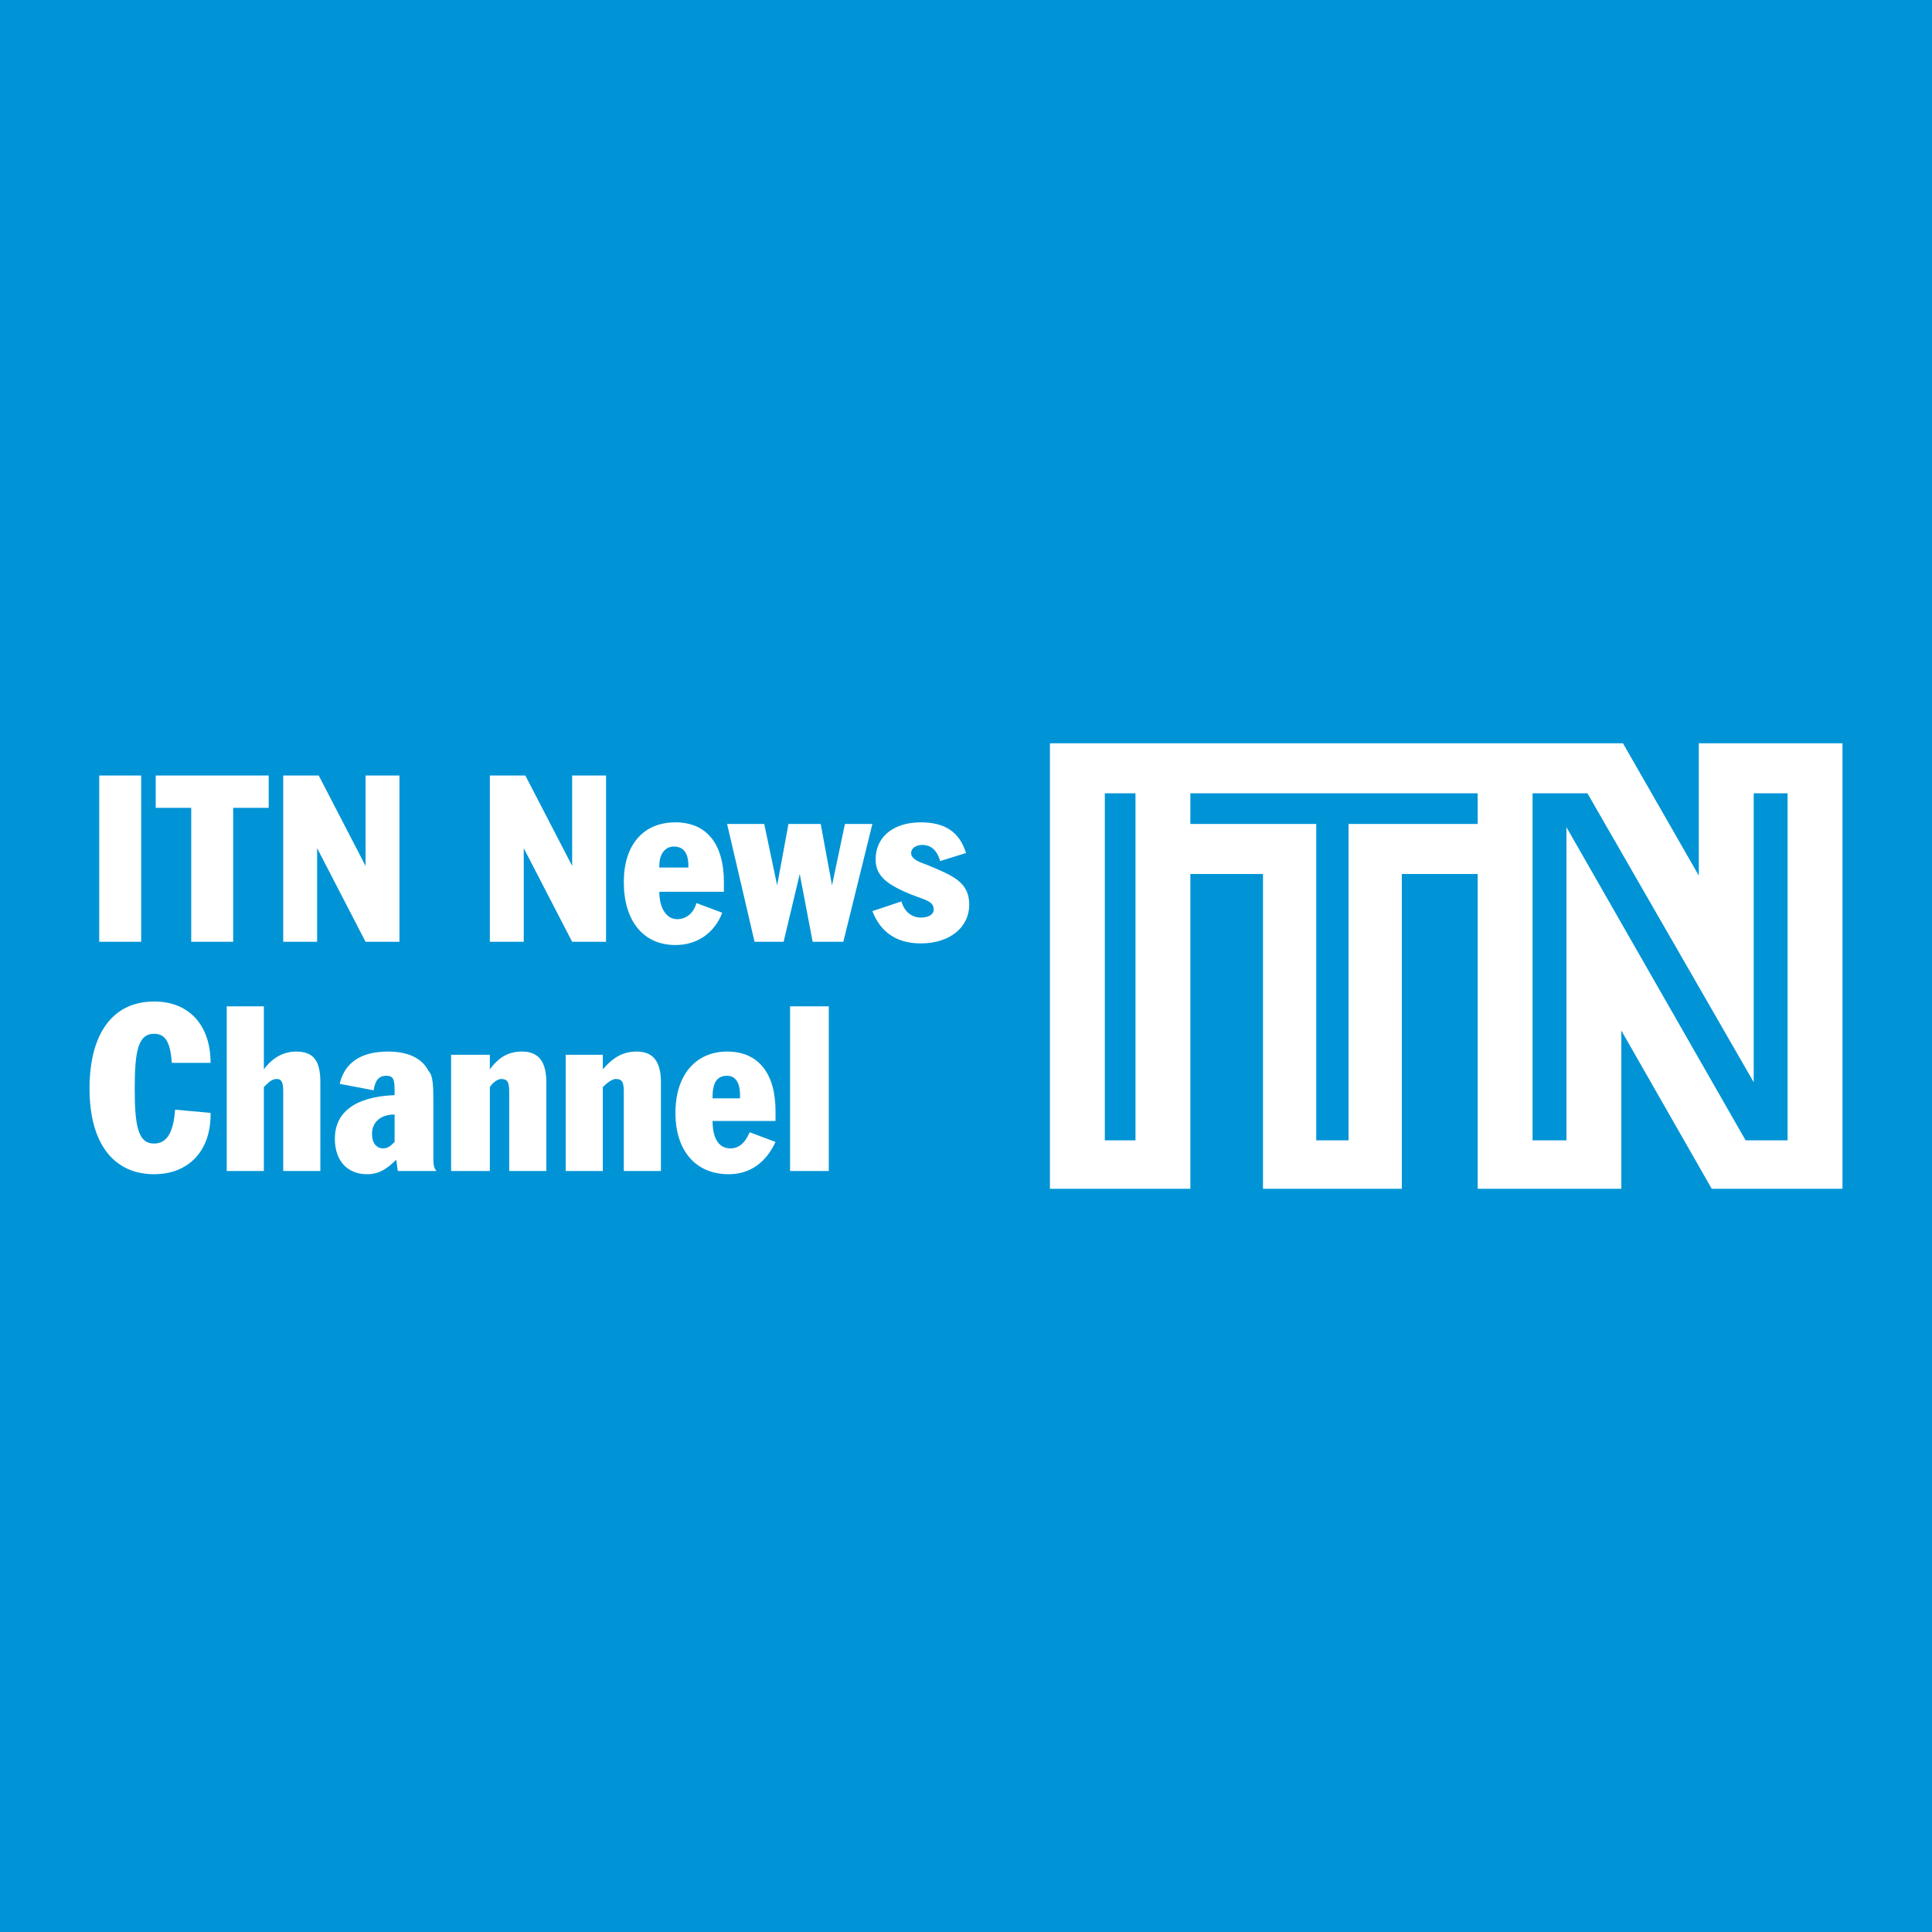 ITN News Channel - A Display Rights Content Partner